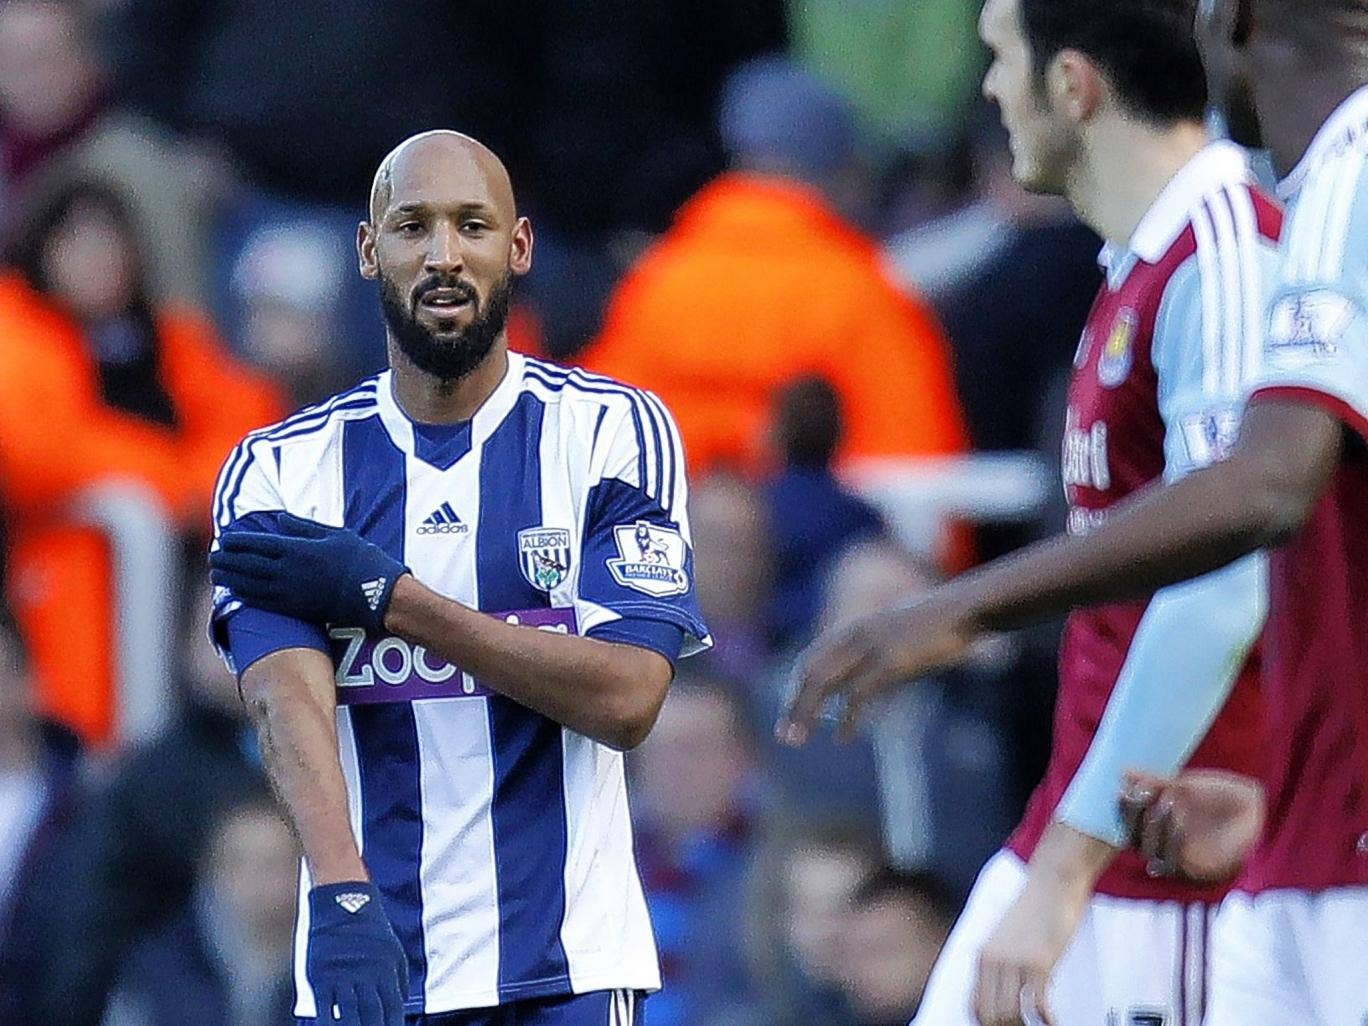 Nicolas Anelka appears to make the 'la quenelle' gesture after scoring the first goal for West Brom in the 3-3 draw against West Ham